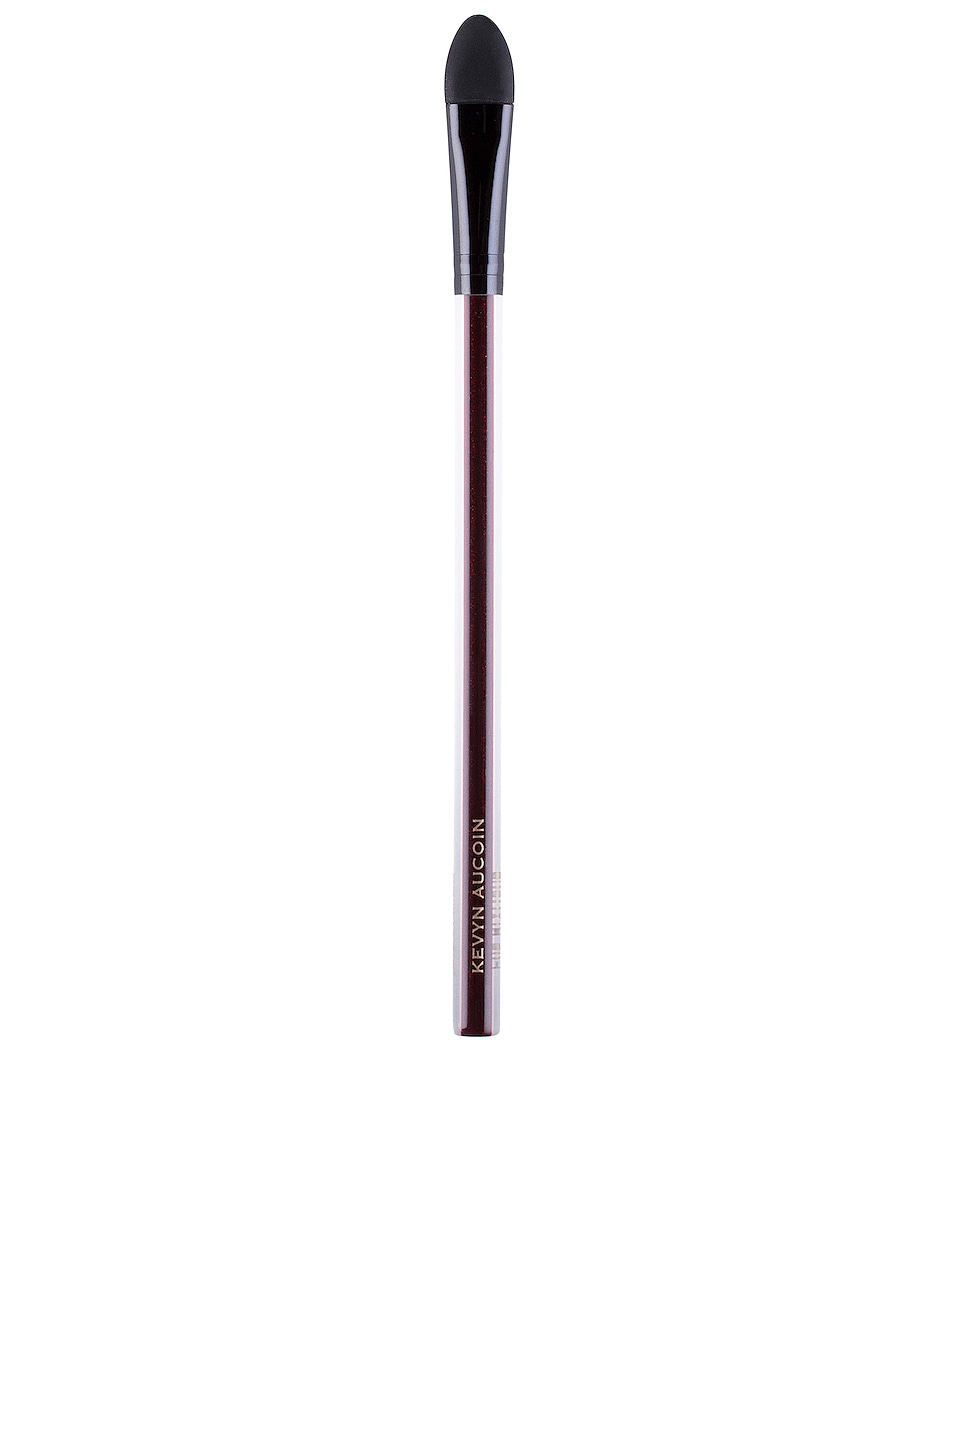 Kevyn Aucoin The Silicone Applicator